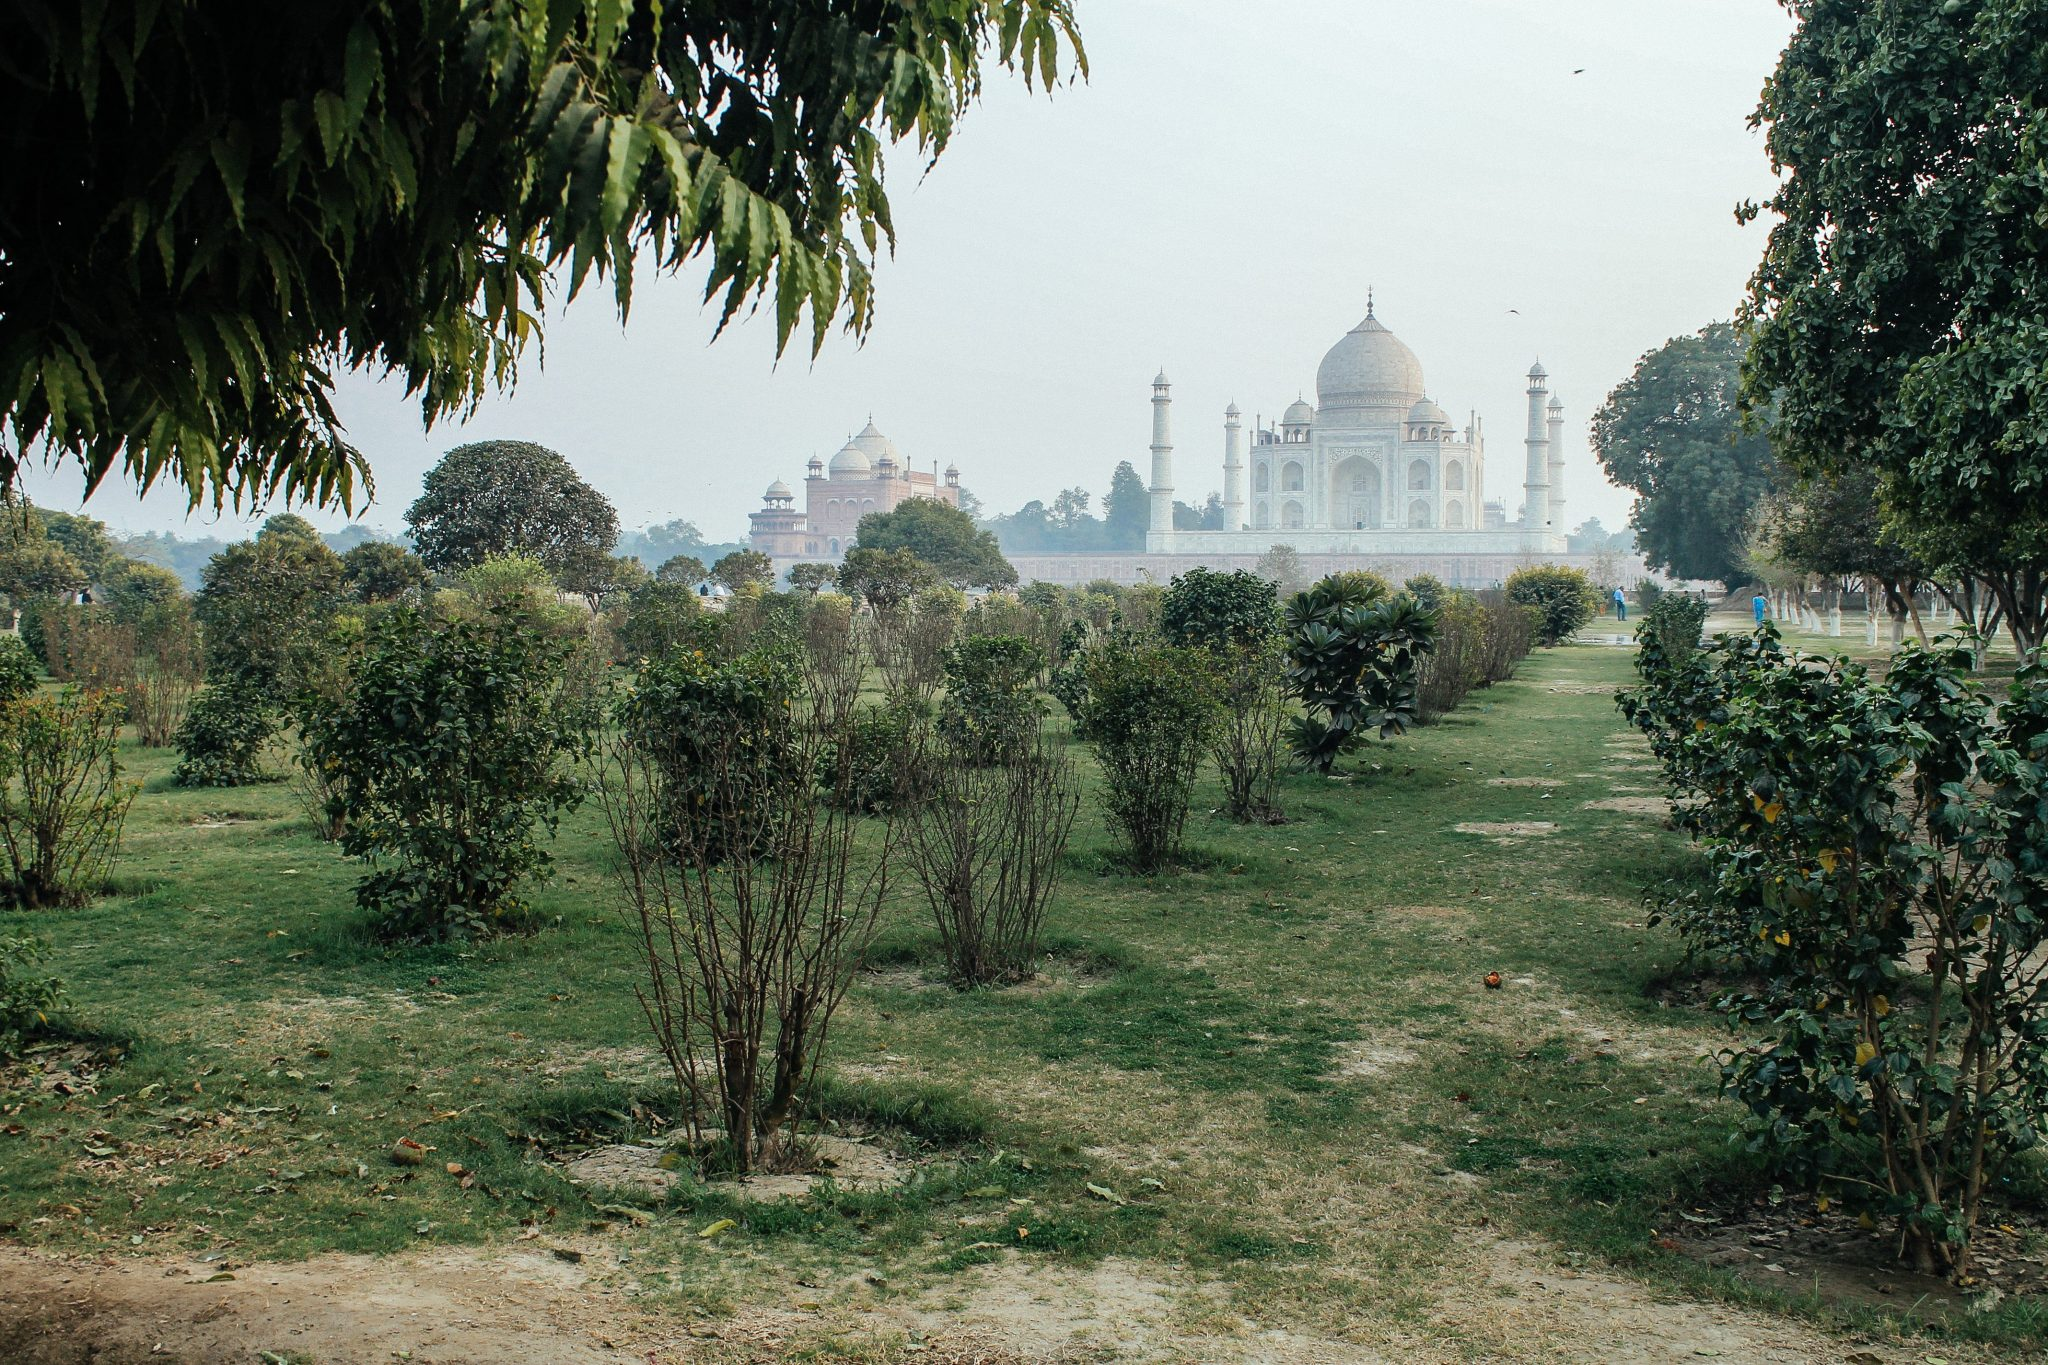 Mehtab Bagh, Taj Mahal | Agra Attractions | India Travel Itinerary